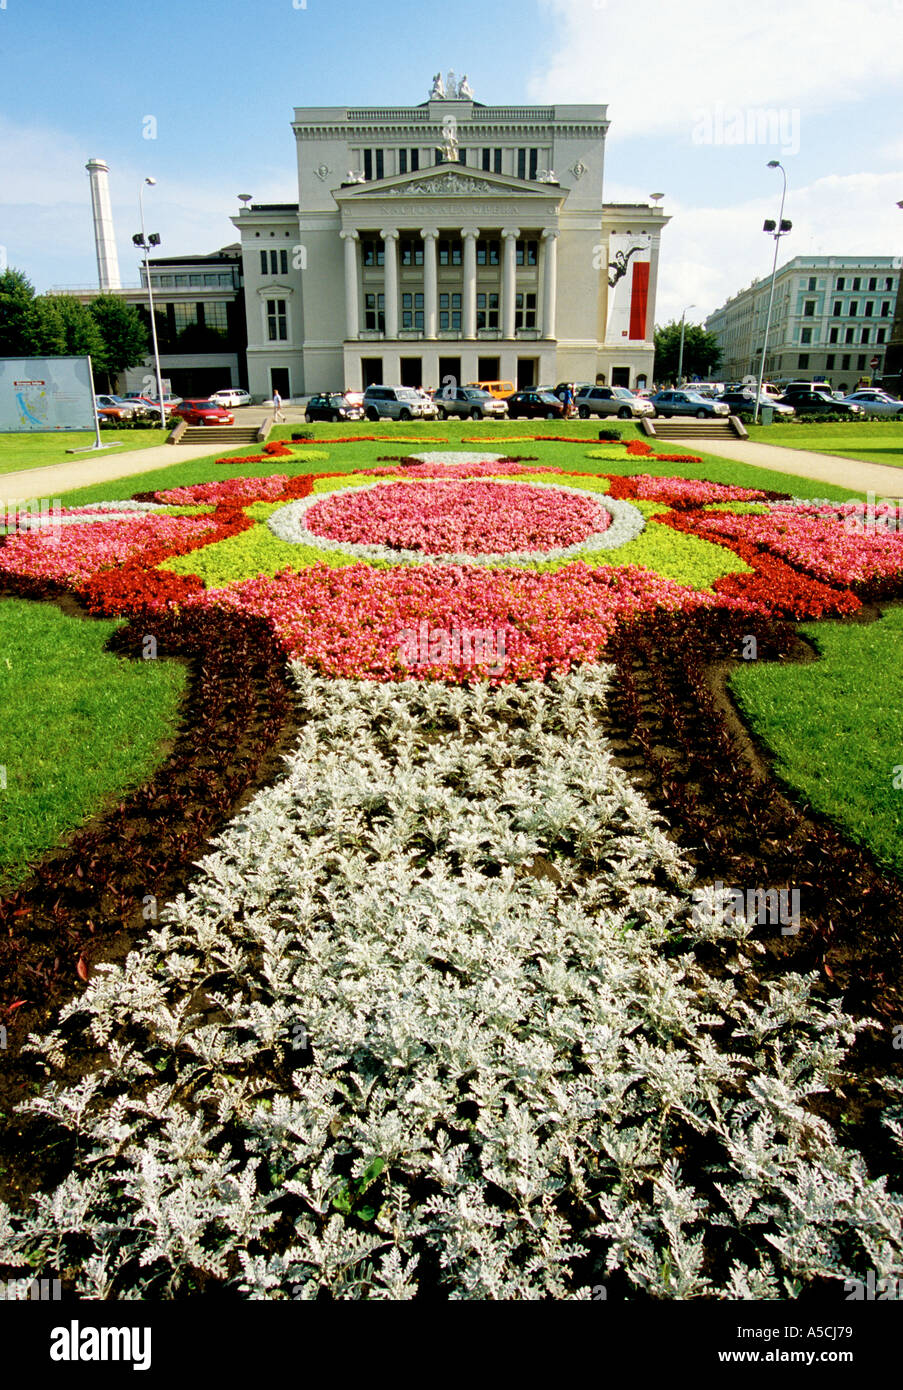 Flower Garden Design flower garden design Riga Latvia Flower Garden Design In Front Of The National Opera House